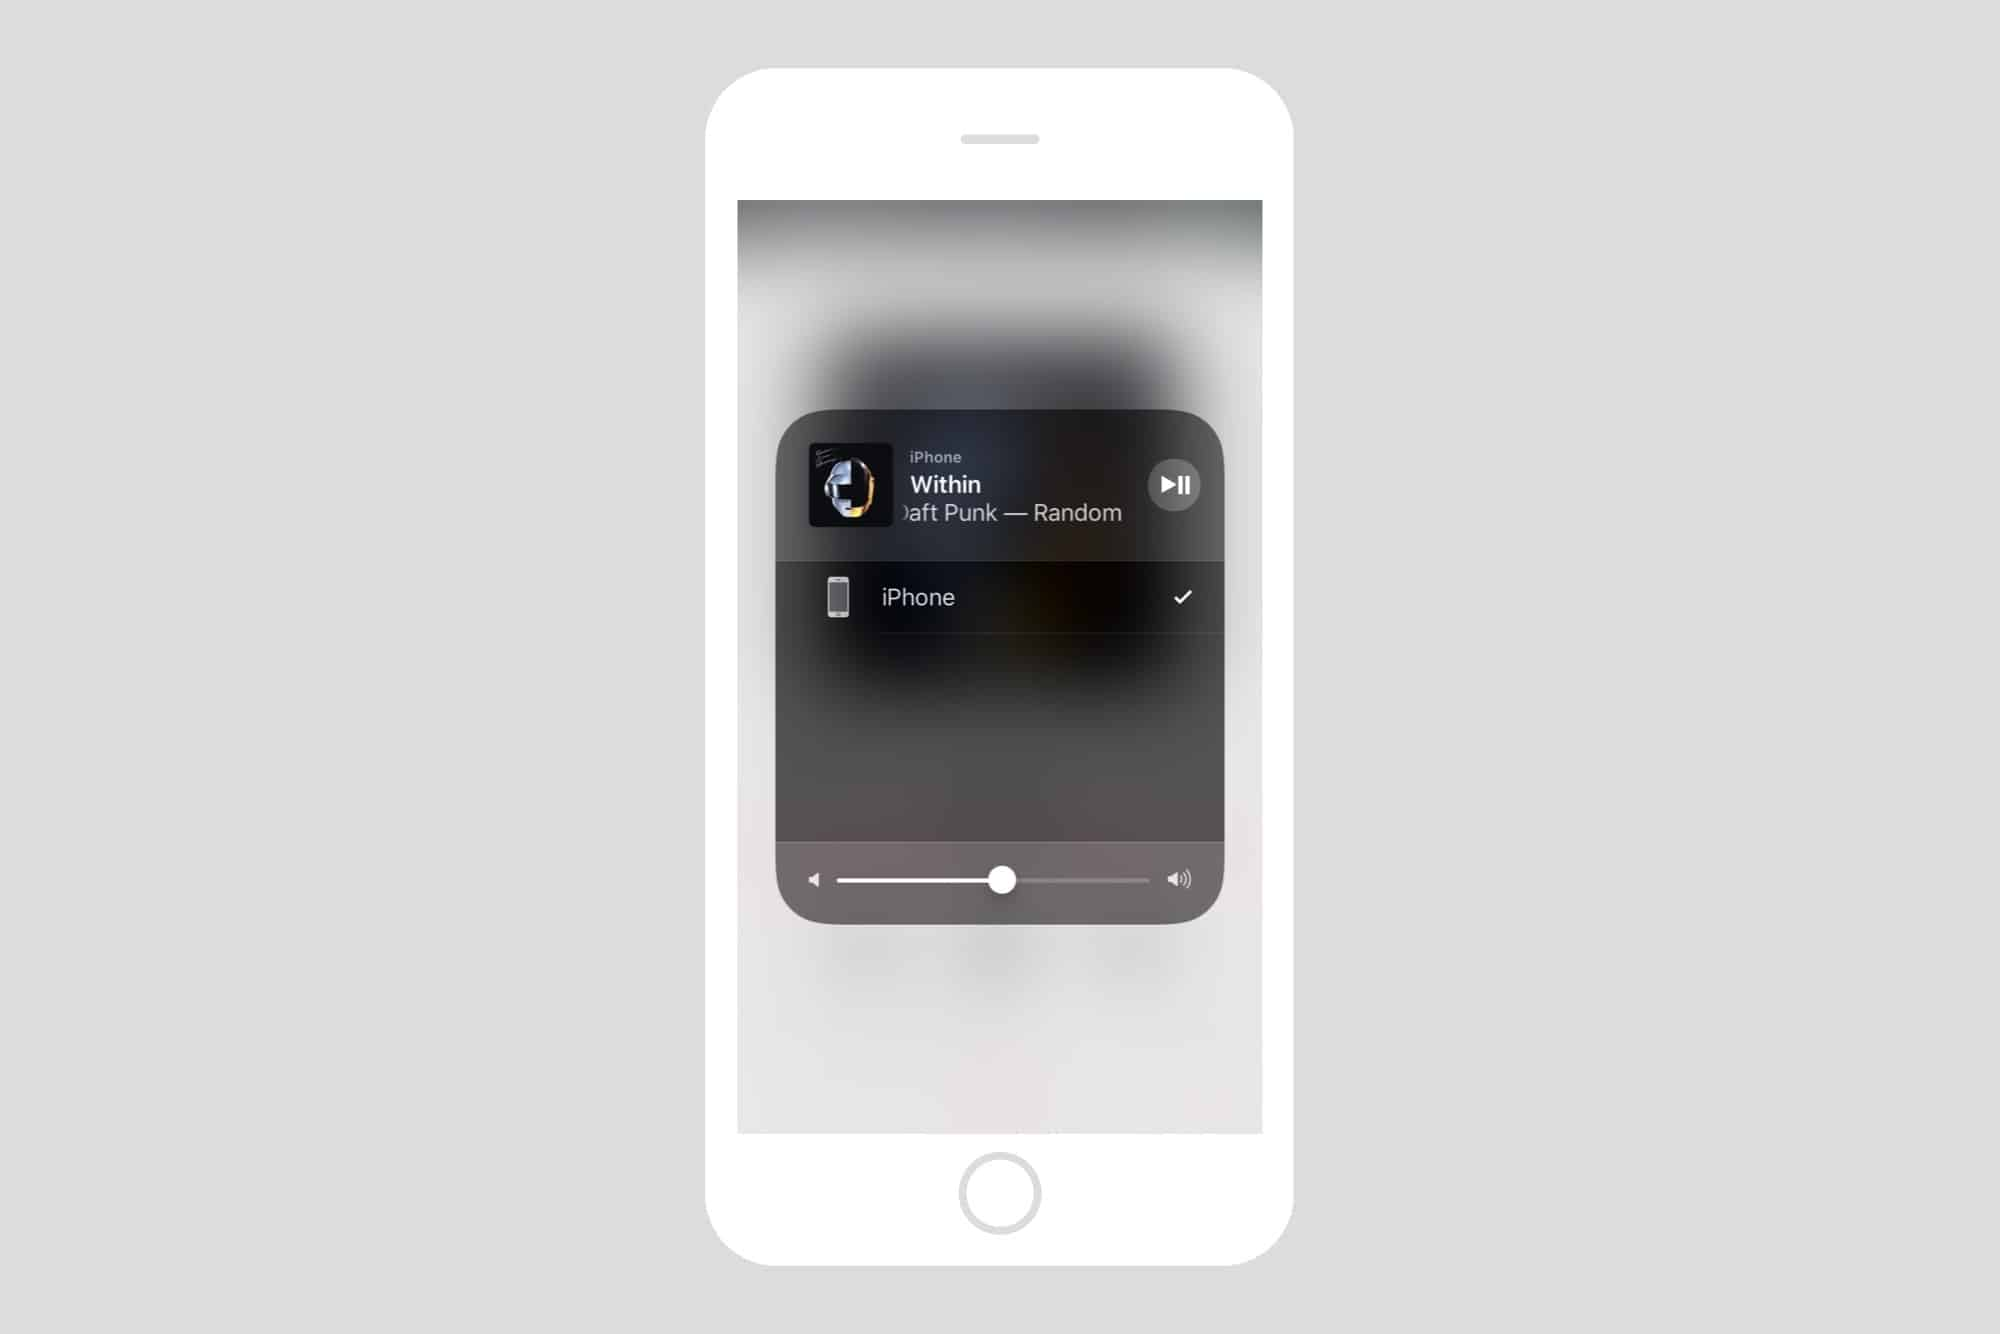 This is where the Homepod would appear in Control Center.